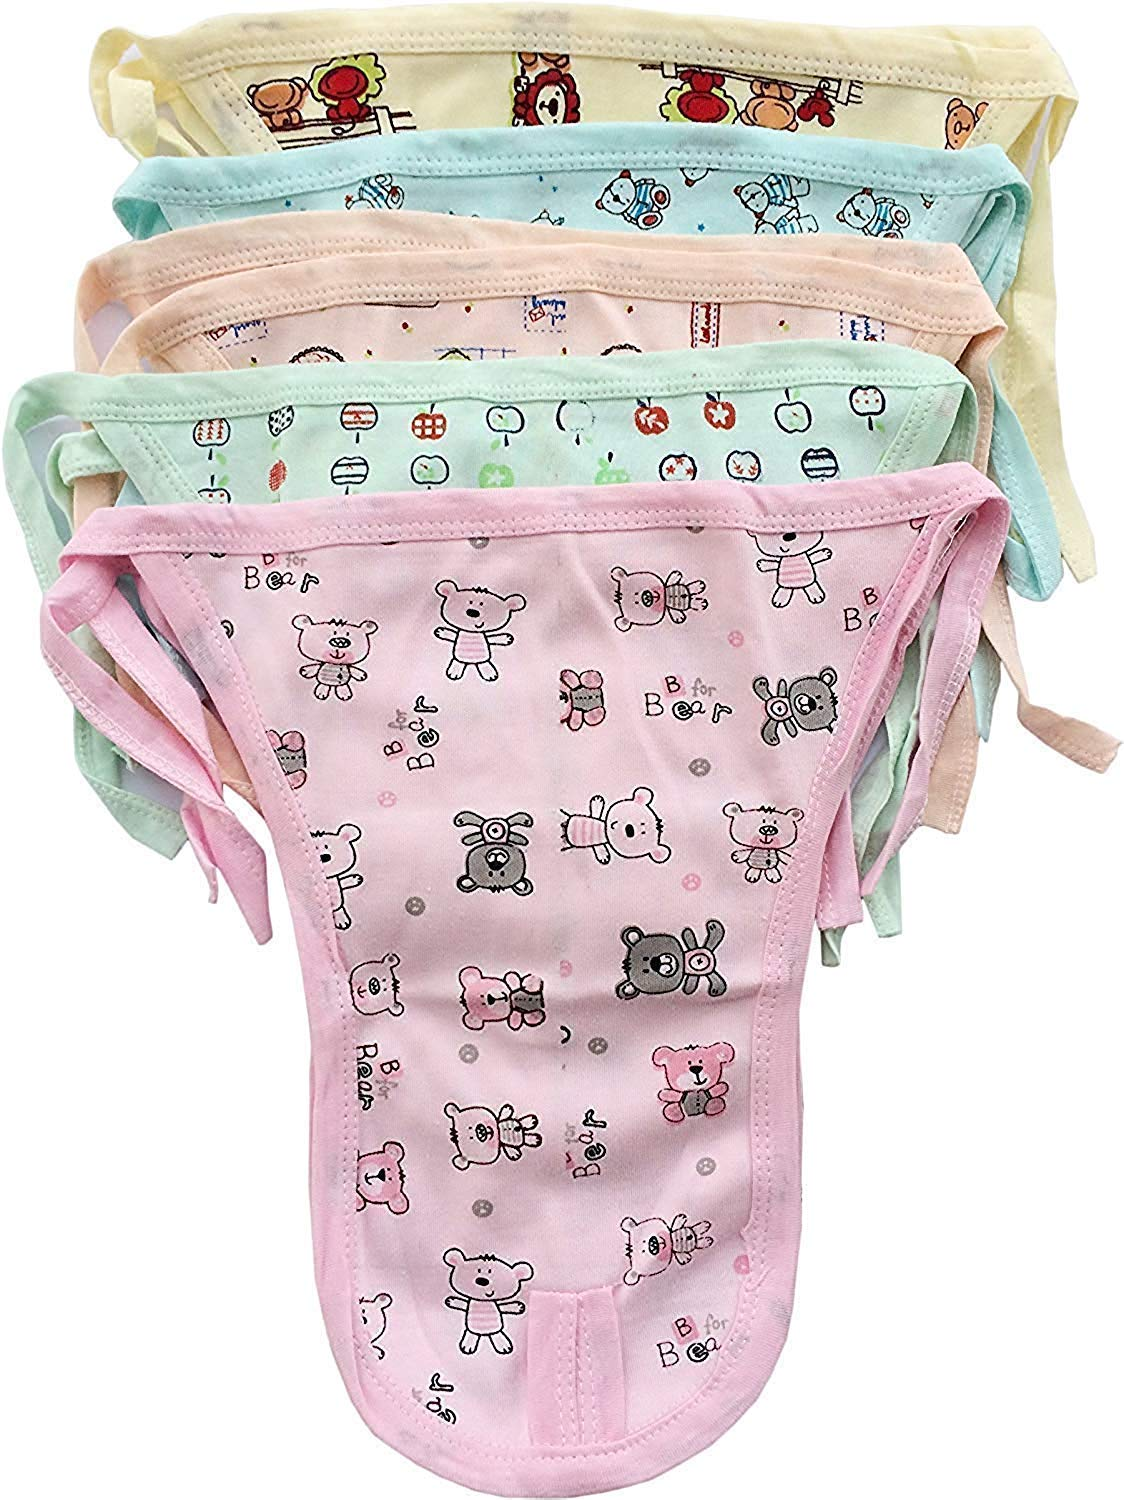 Go Chikko Babies Printed Cotton Reusable Diaper  9 12 Months Multicolor   Pack of 6